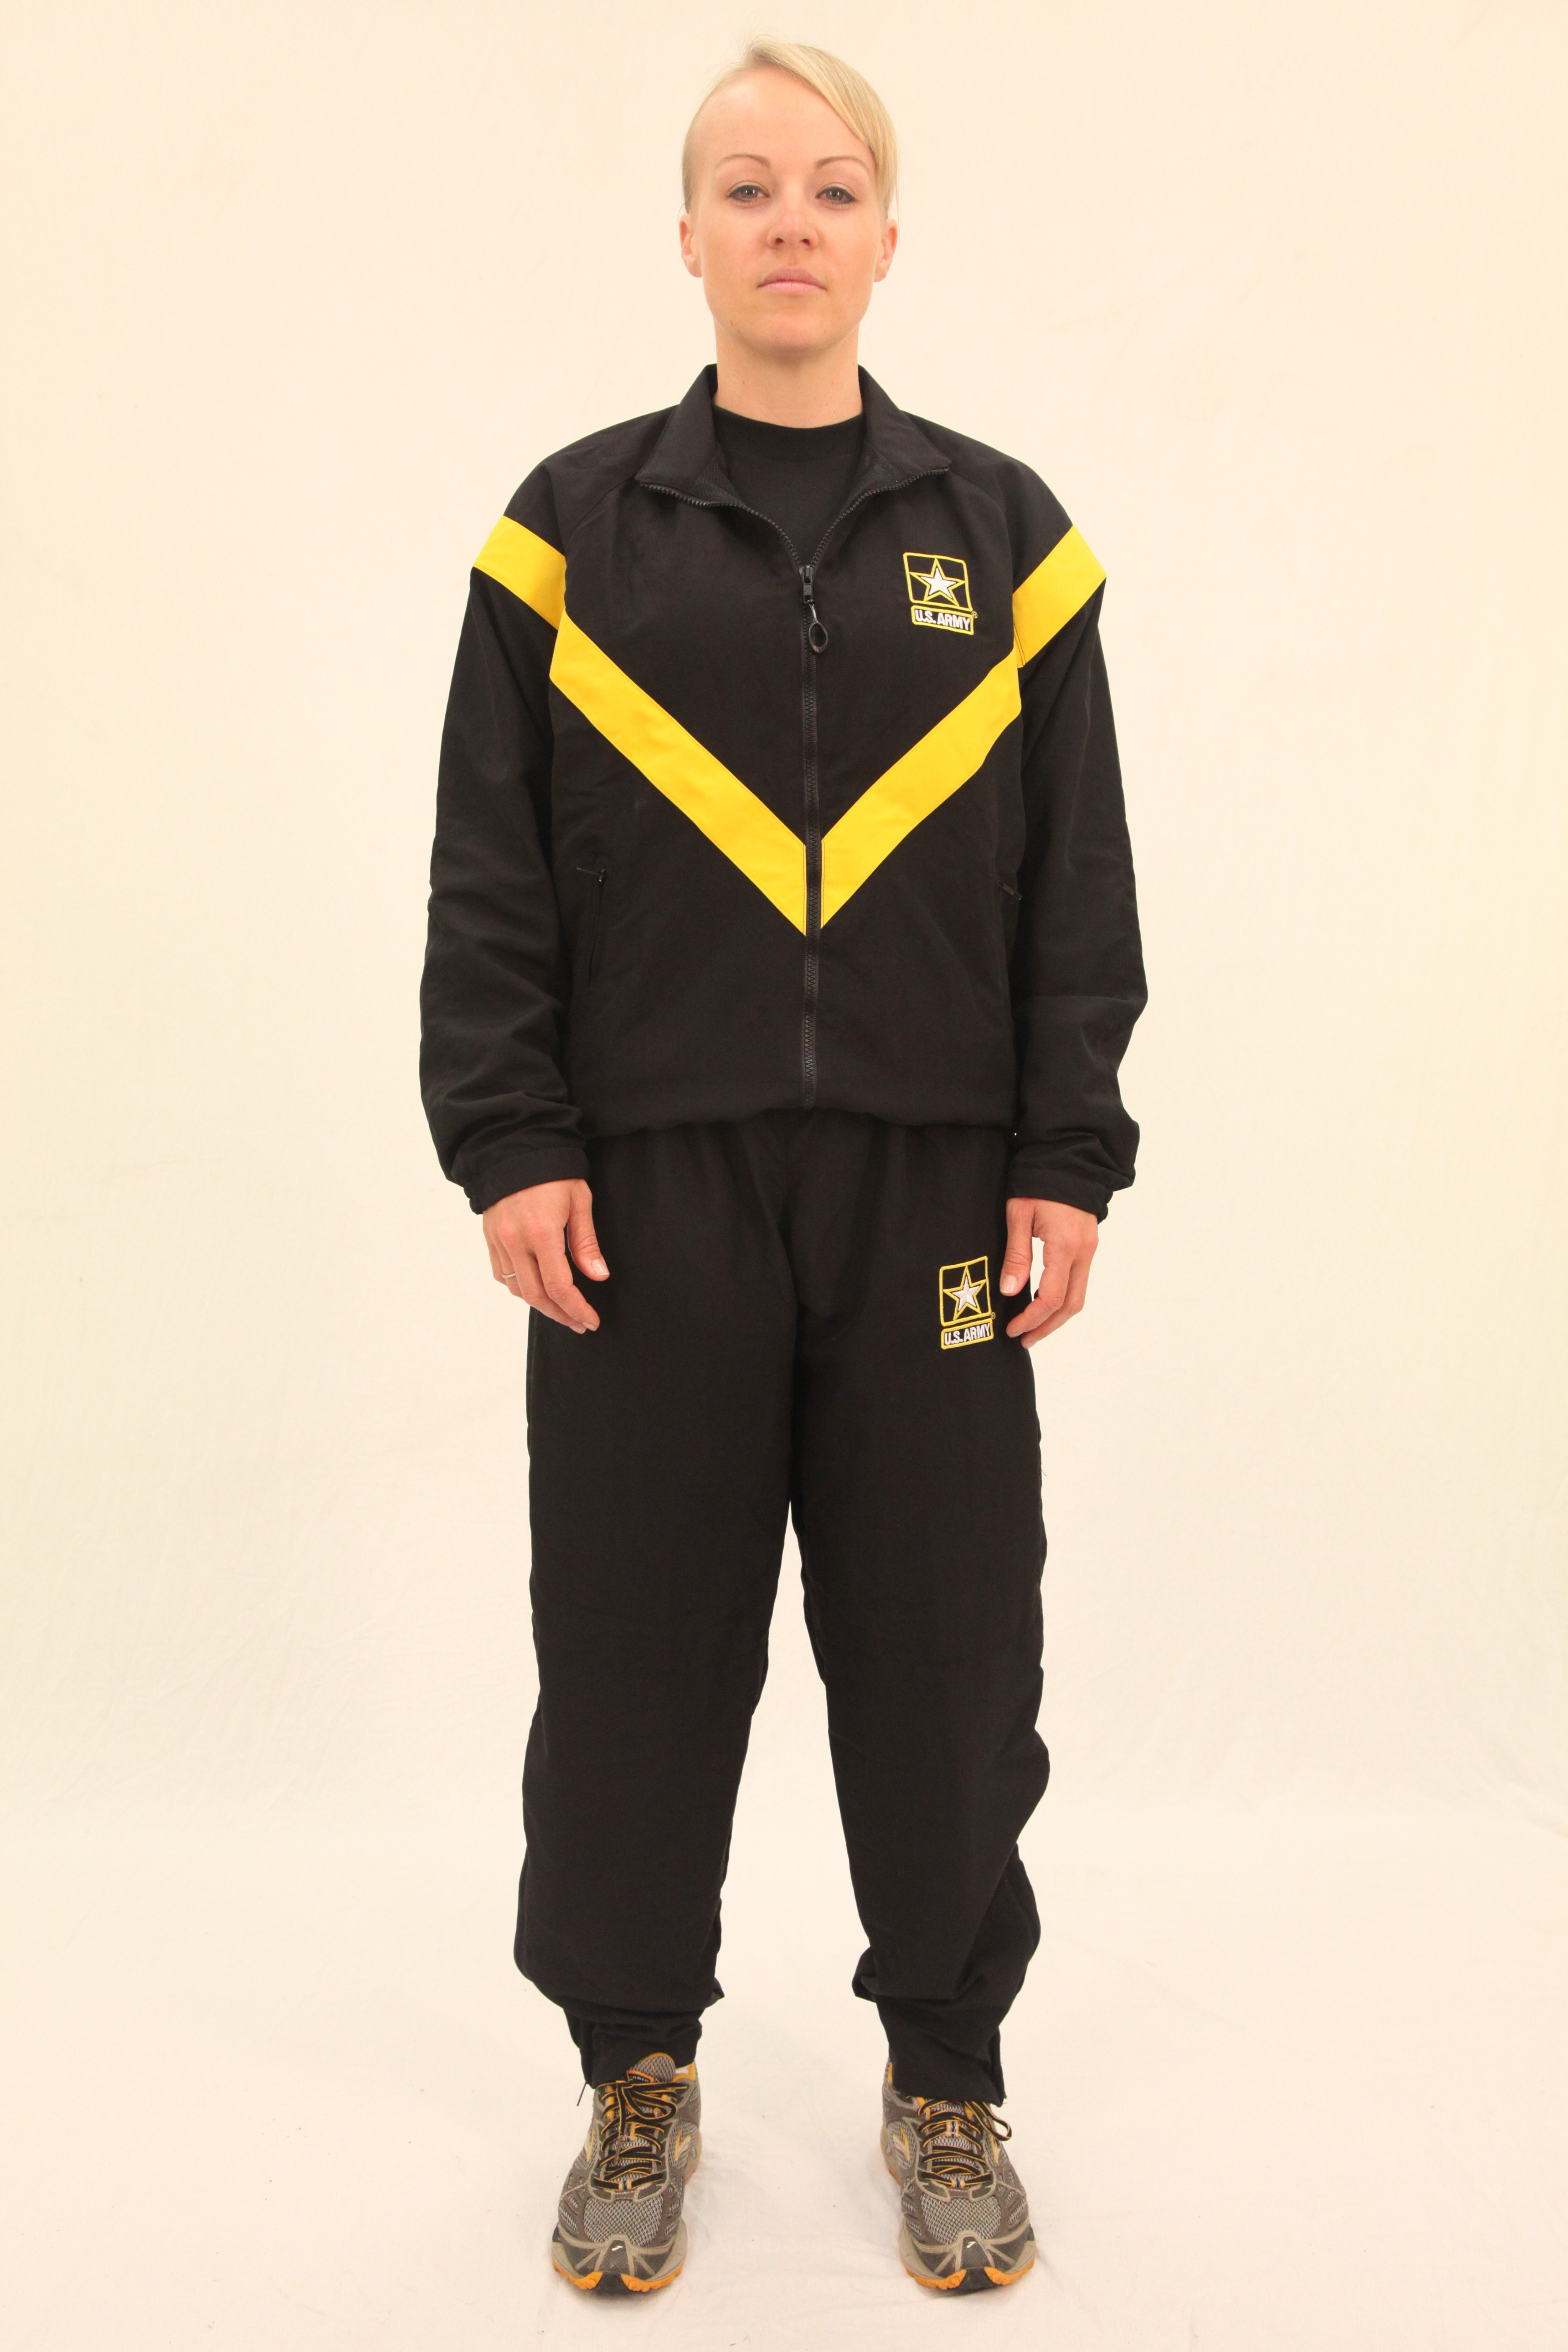 can as i dress yourself in my personal military services rehabilitation clothes for public